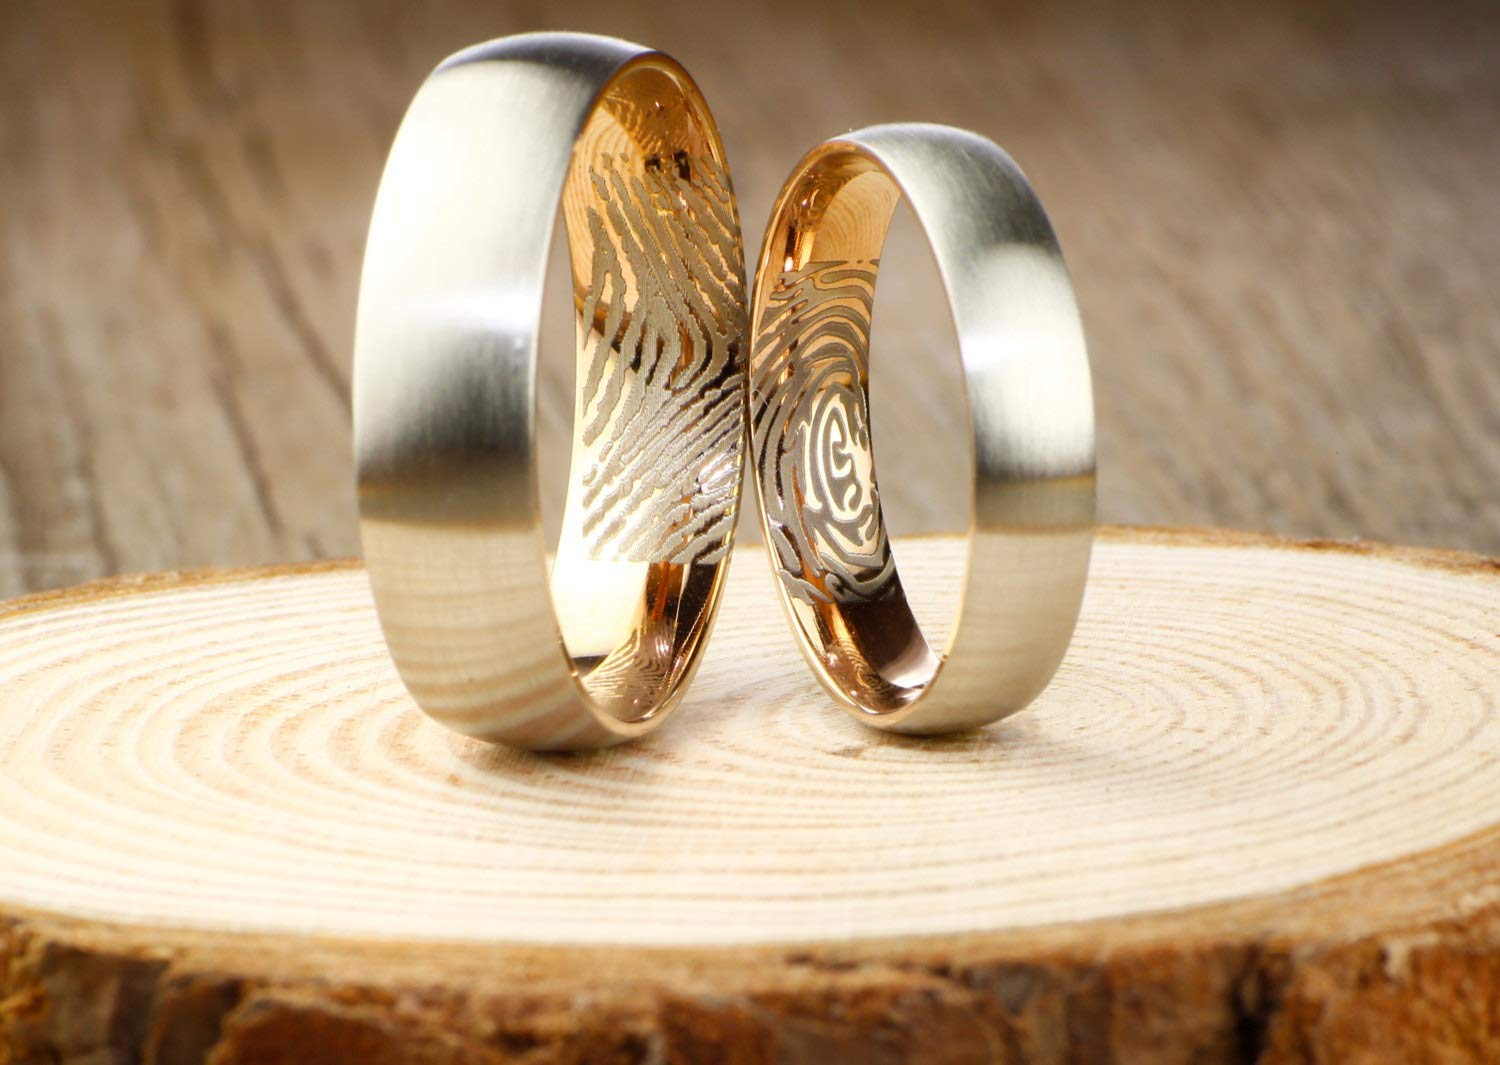 Your Actual High quality Finger Print Rings - RING Matt WEDDING Personalized Memphis Mall